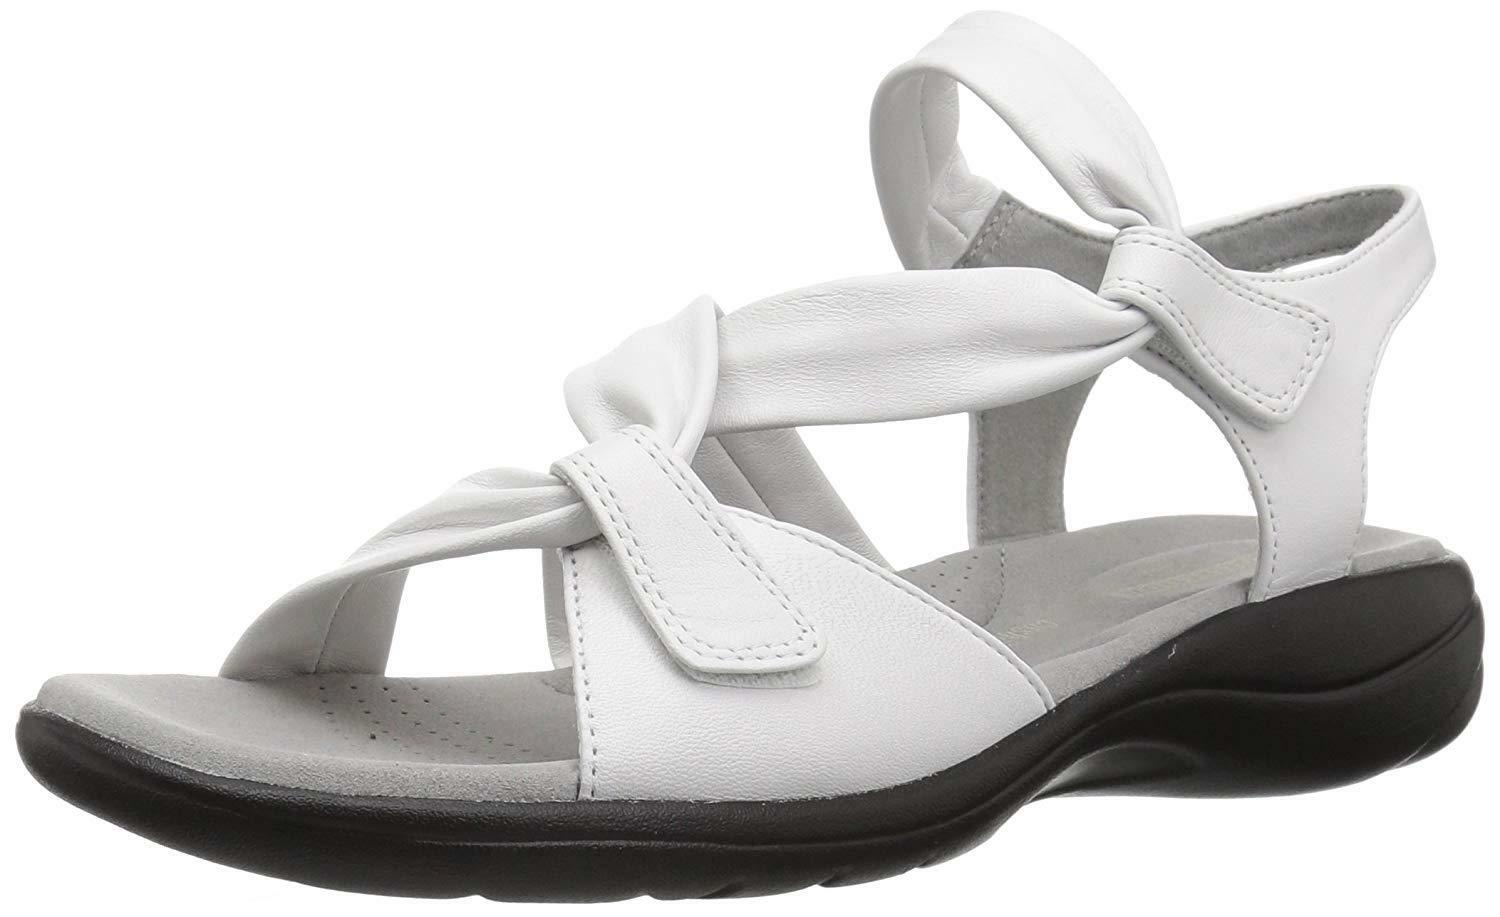 Clarks Comfort SAYLIE MOON Donna White Pelle 134450 Casual Comfort Clarks Sandals 230e20